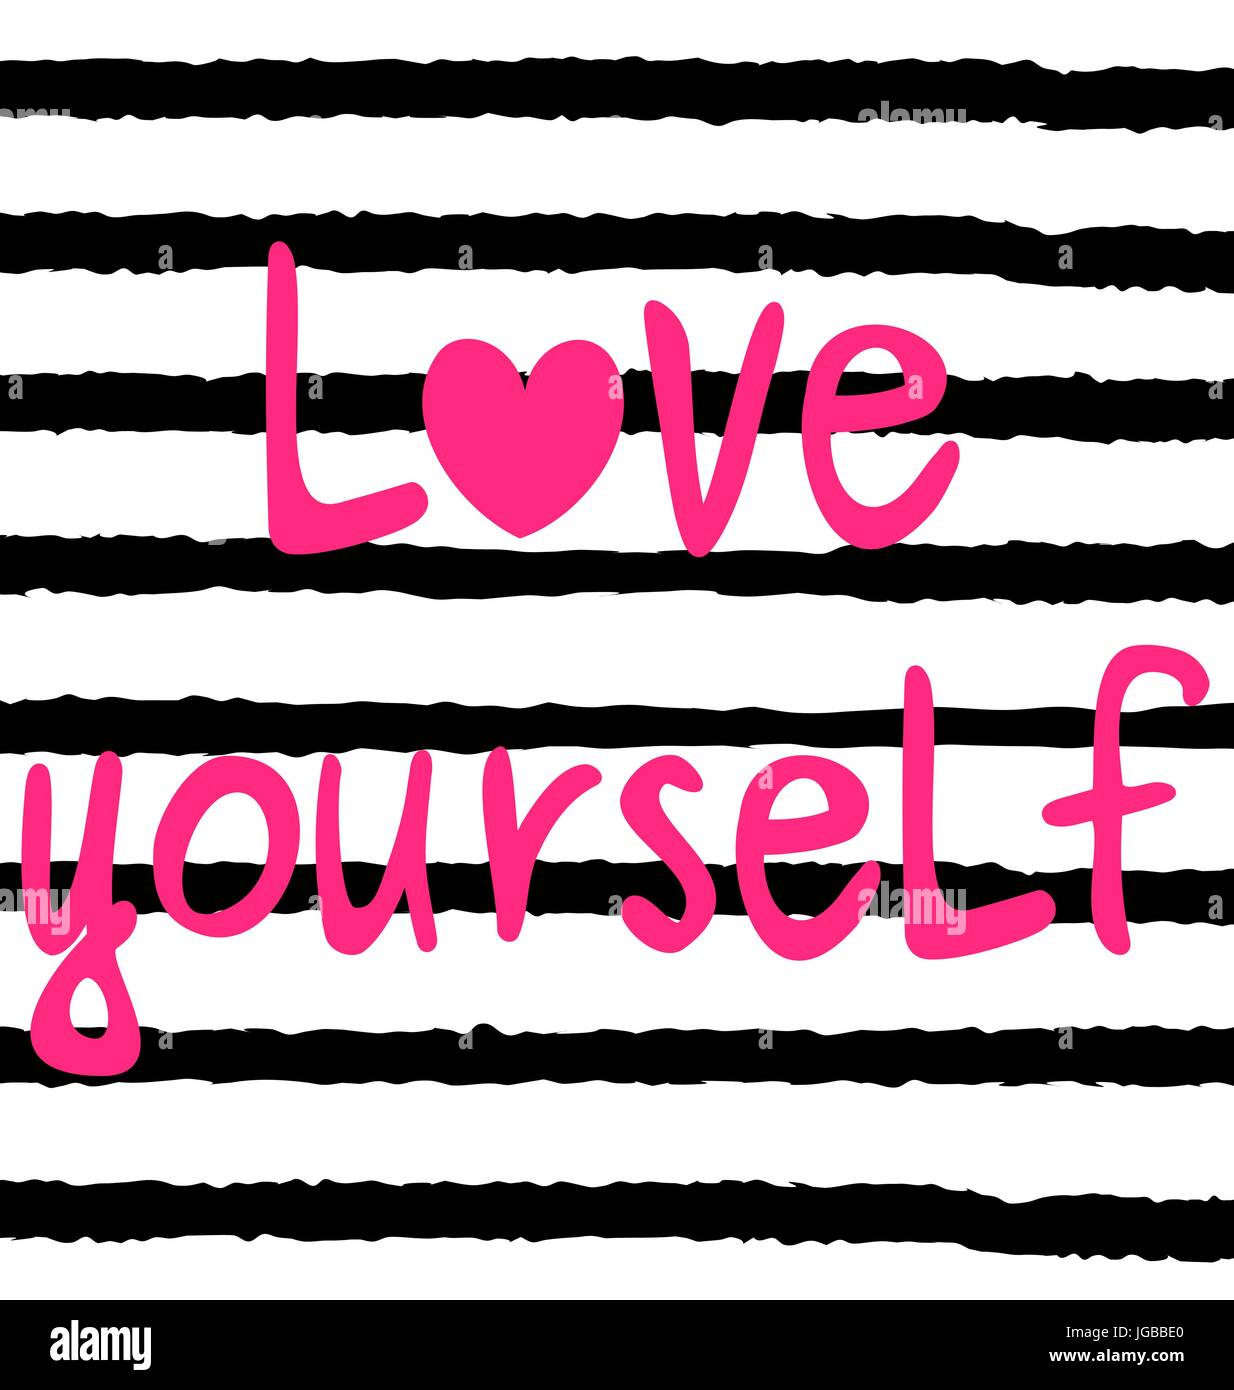 Cute Hand Drawn Pink Love Yourself Lettering Inspirational Quote Vector Card  Illustration On Striped Background